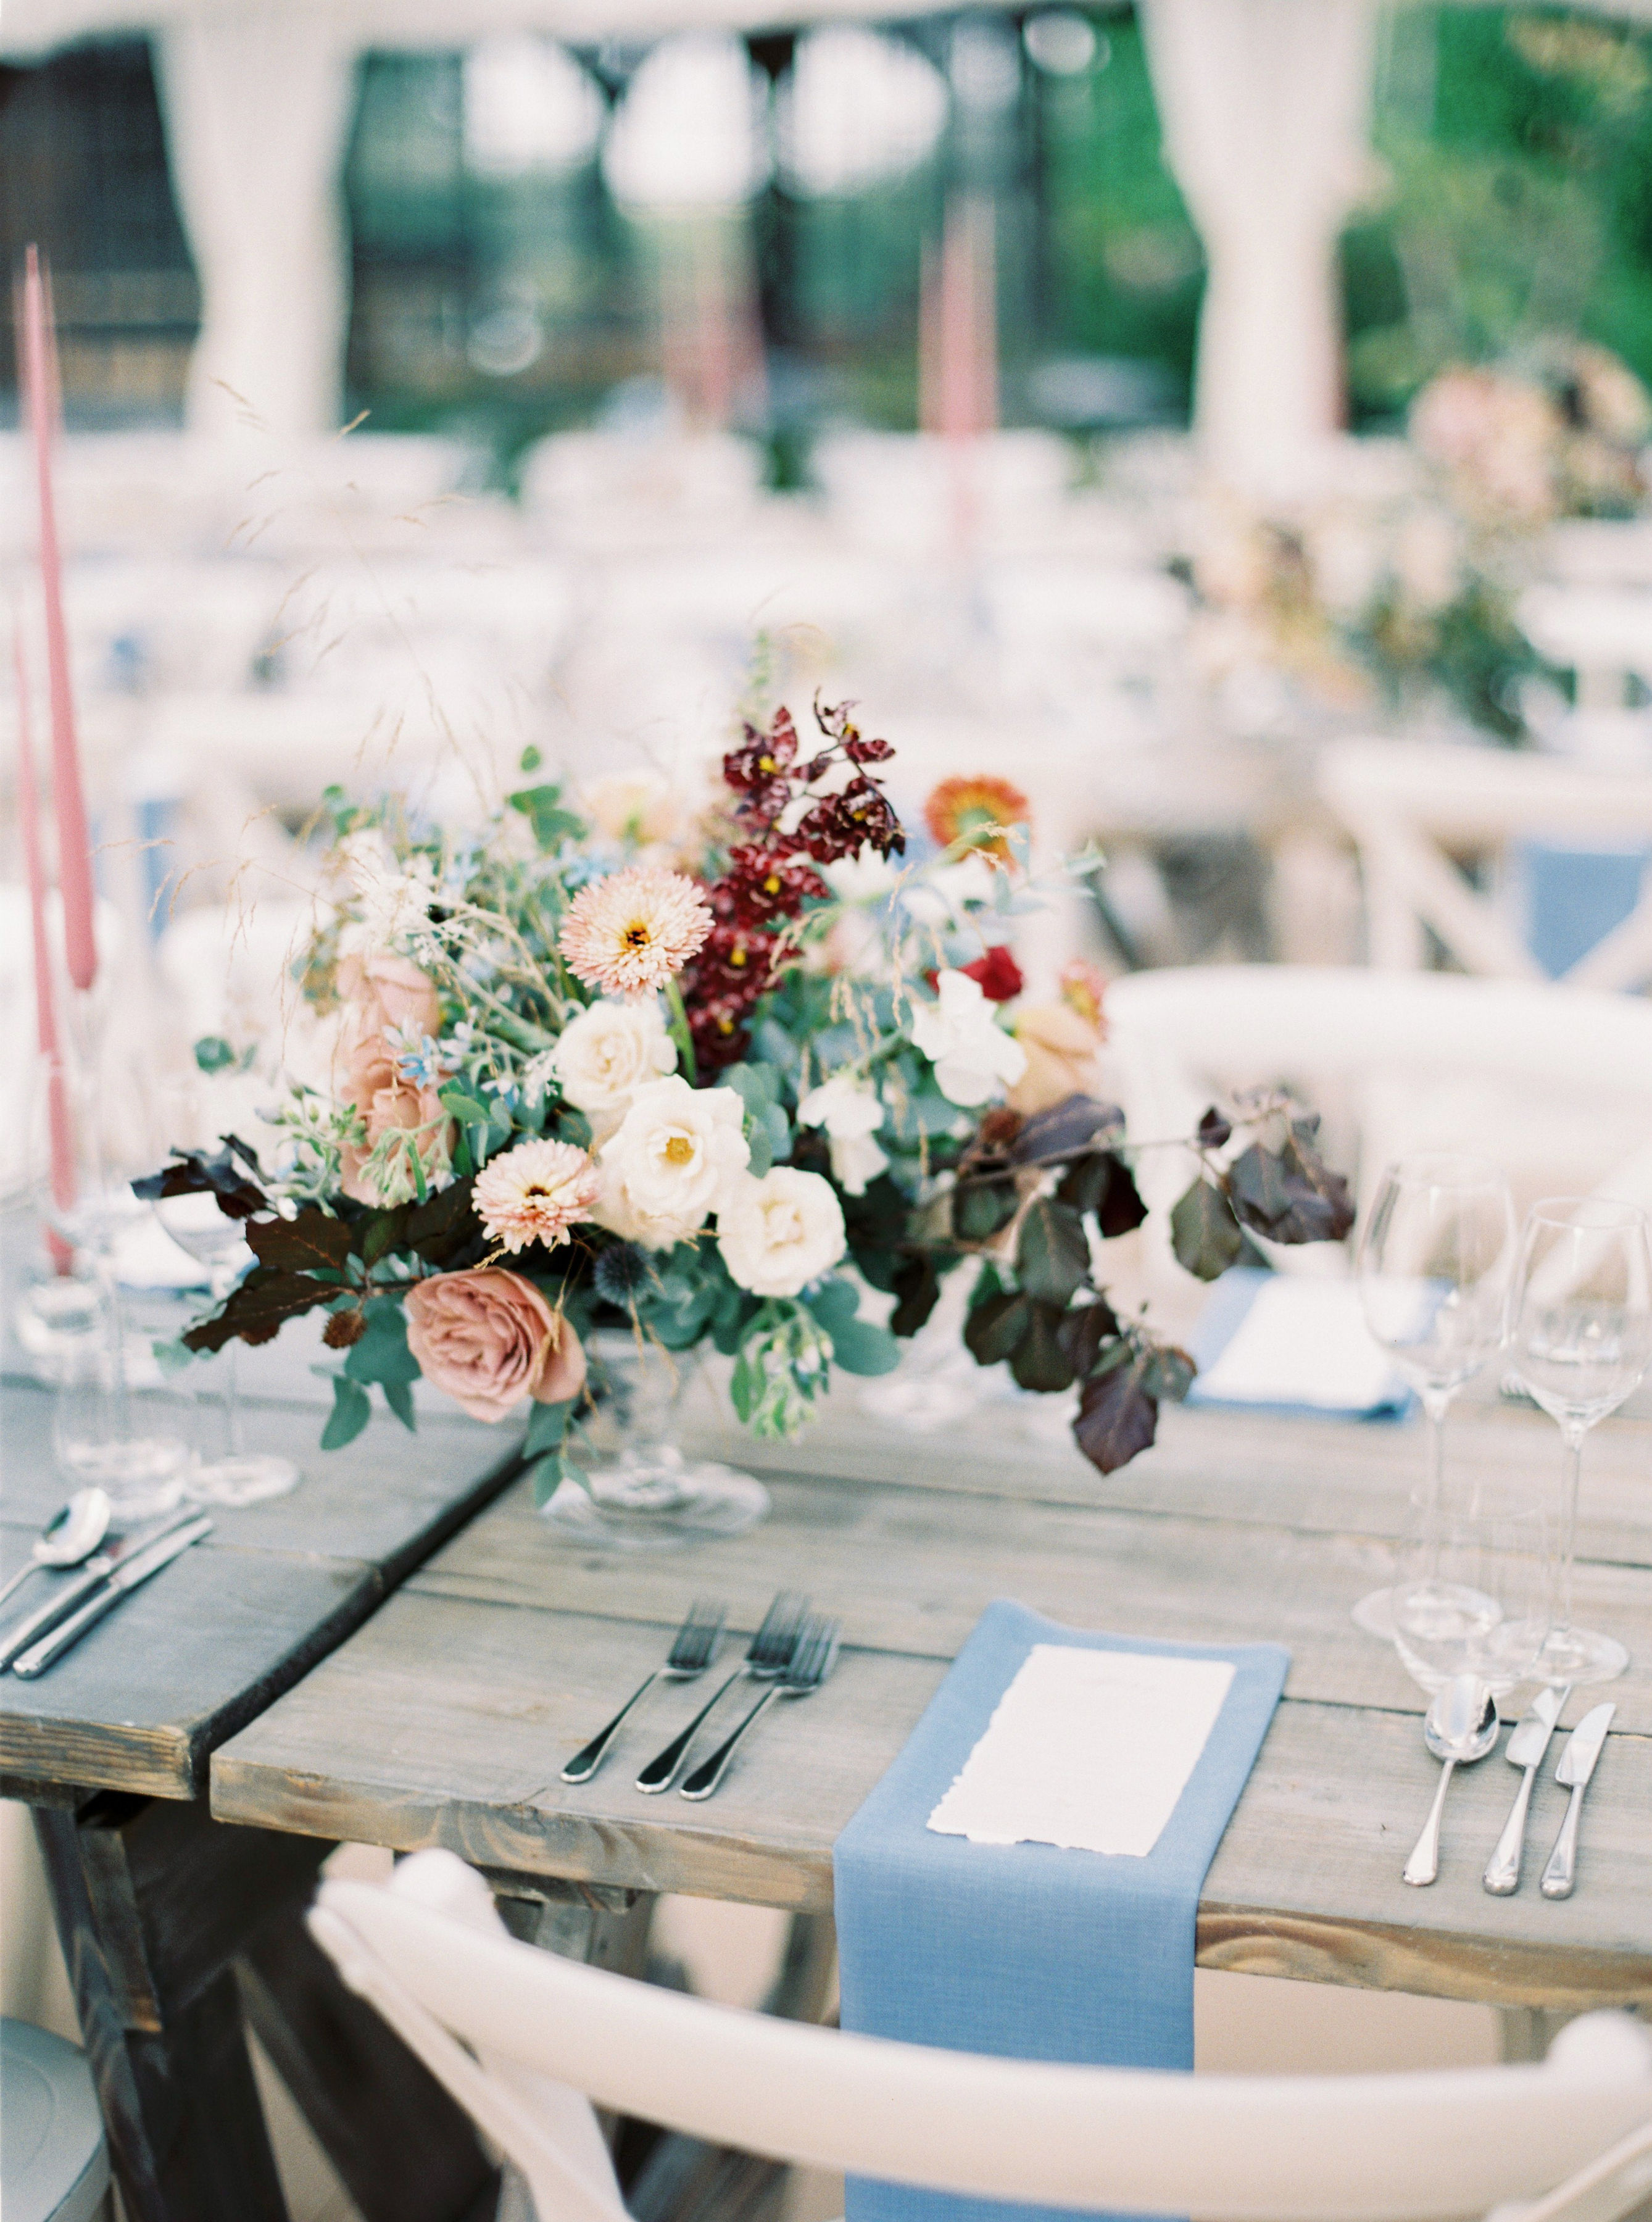 floral centerpieces, blue linens and personalized menus